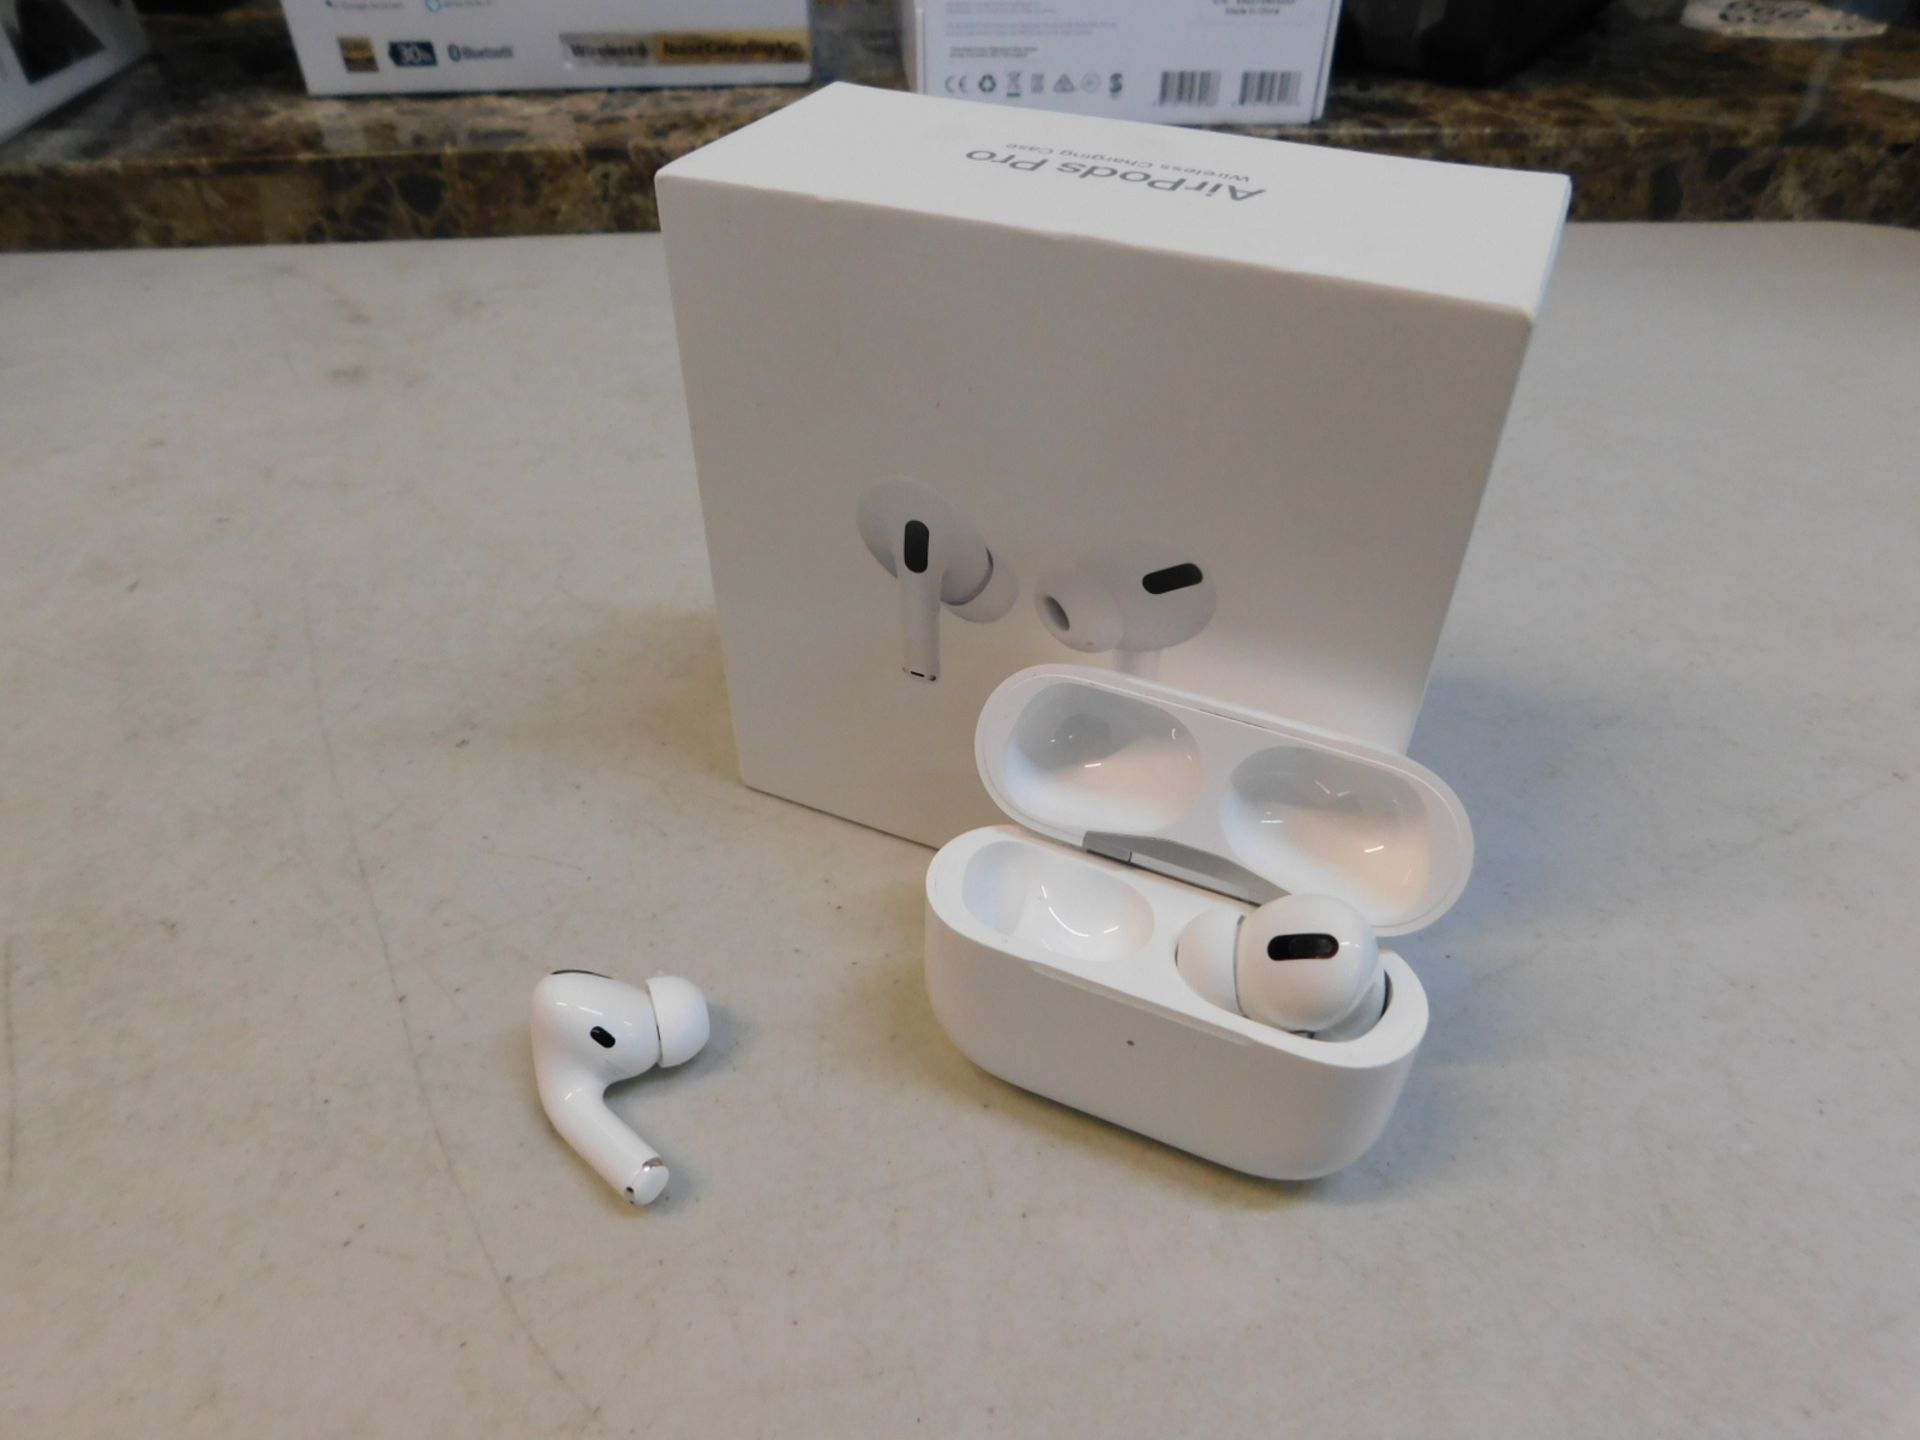 1 BOXED PAIR OF APPLE AIRPODS PRO BLUETOOTH EARPHONES WITH WIRELESS CHARGING CASE RRP £249.99 (